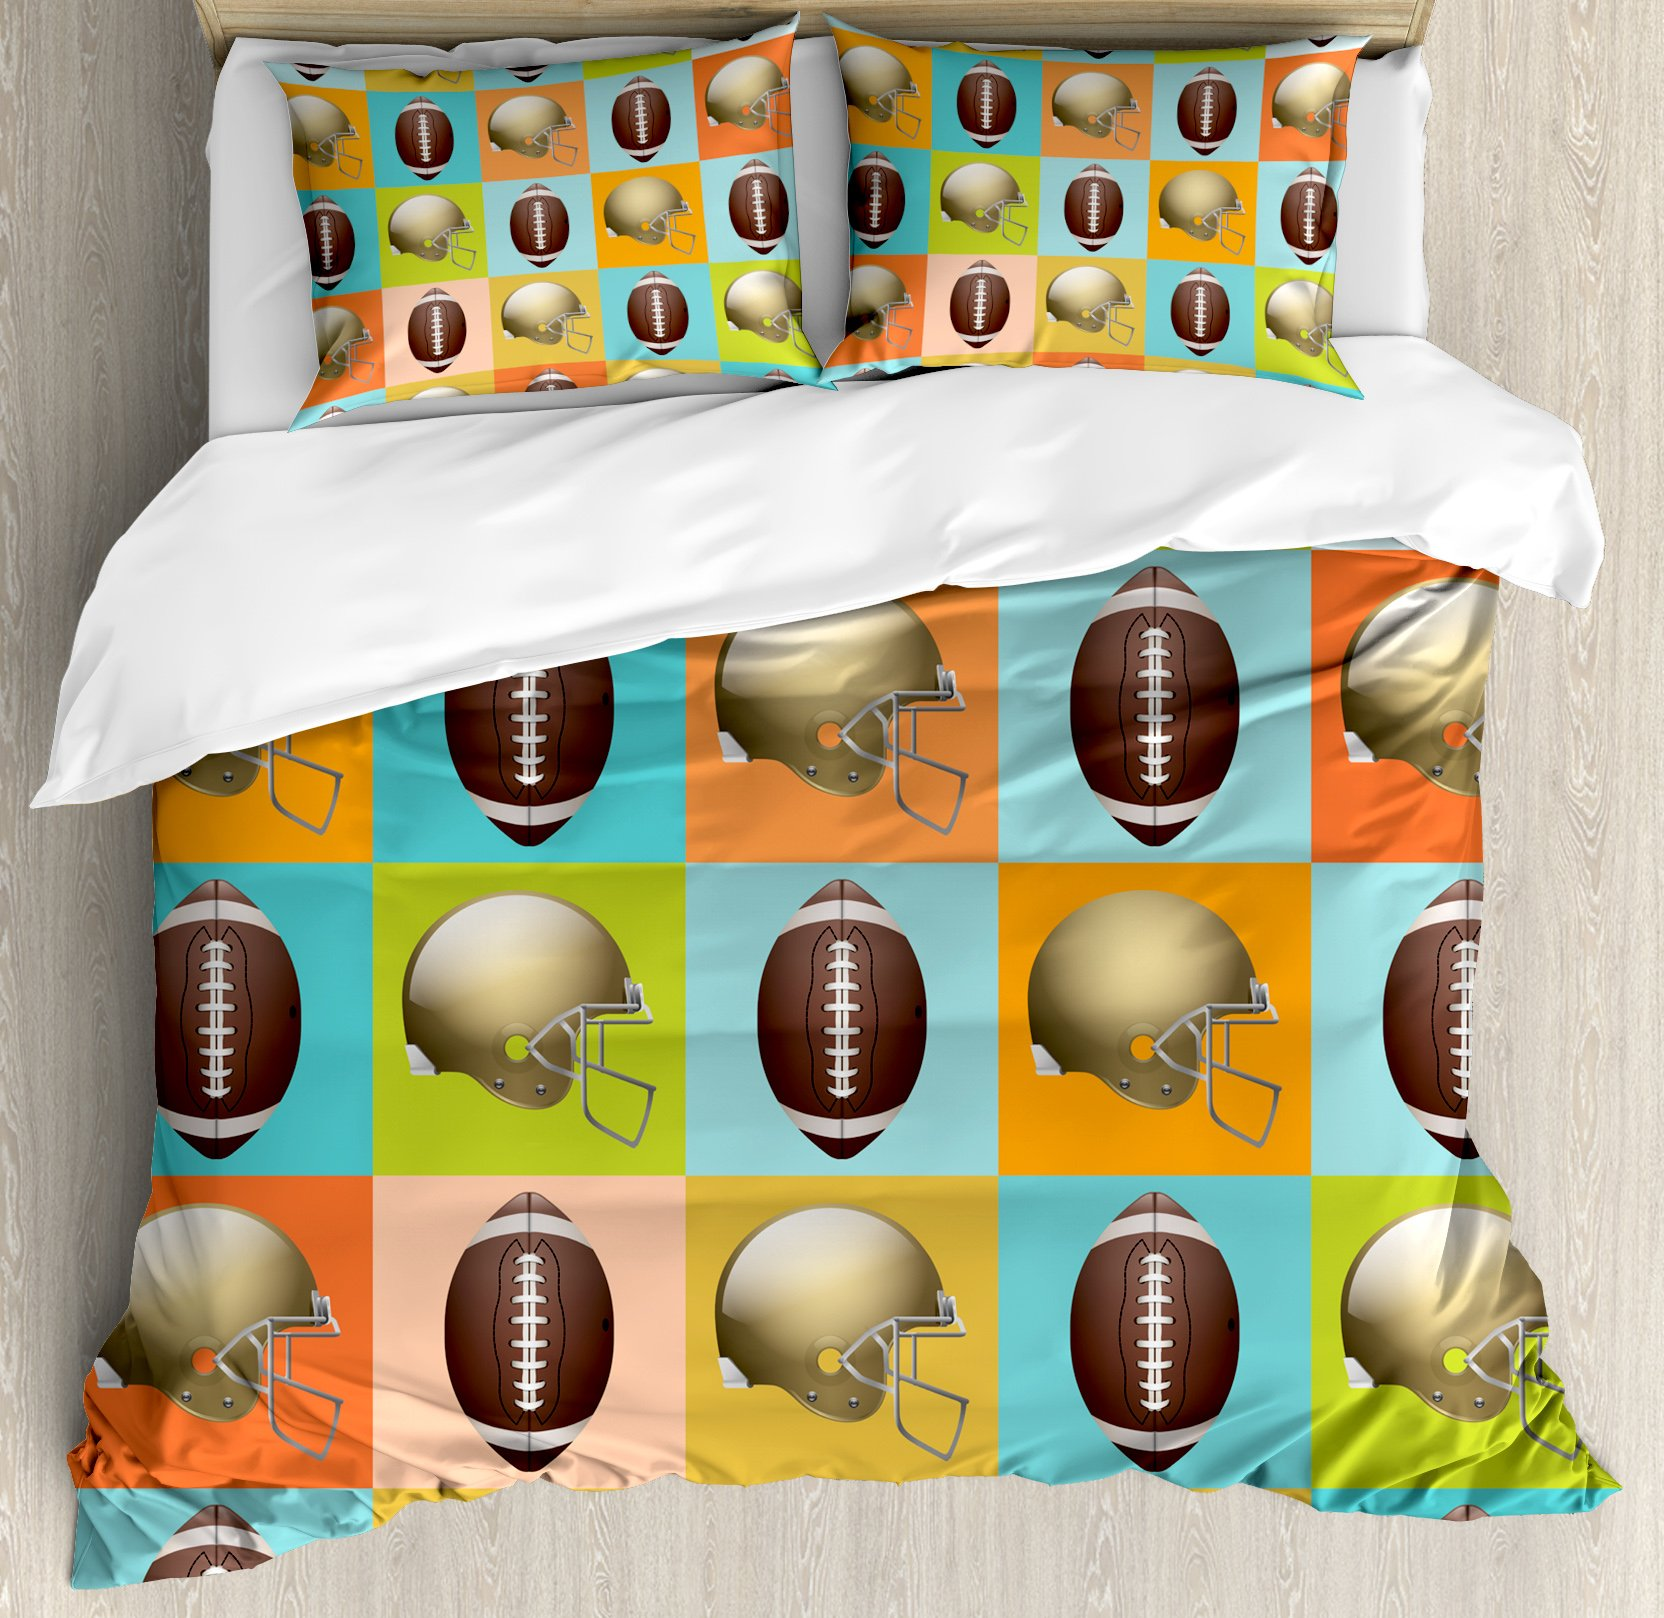 Football Duvet Cover Set Queen Size by Ambesonne, Colorful Squares Mosaic Pattern with Protective Helmets and Balls College Activity, Decorative 3 Piece Bedding Set with 2 Pillow Shams, Multicolor